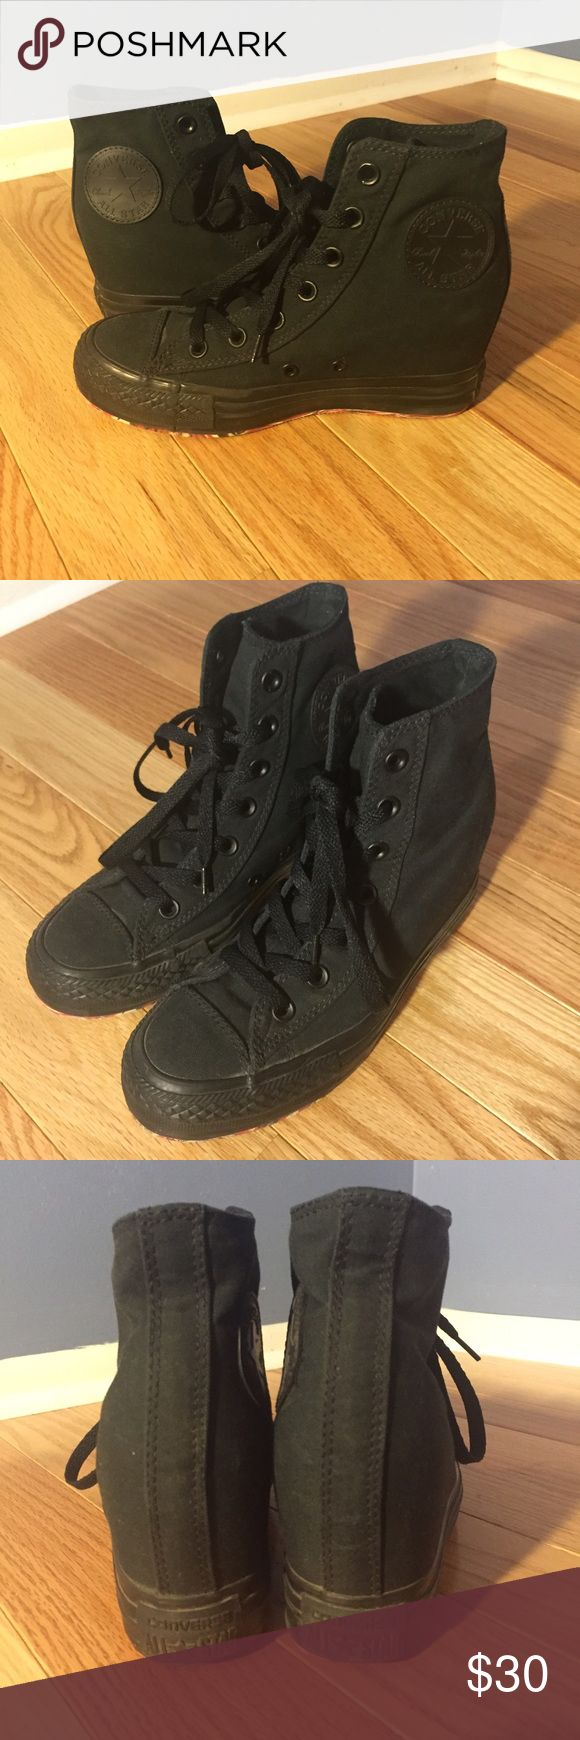 All Black Converse Wedge Hi Top Sneakers Shoes 6.5 All black Converse Wedge sneakers. New - never been worn. Size 6.5. Converse Shoes Sneakers